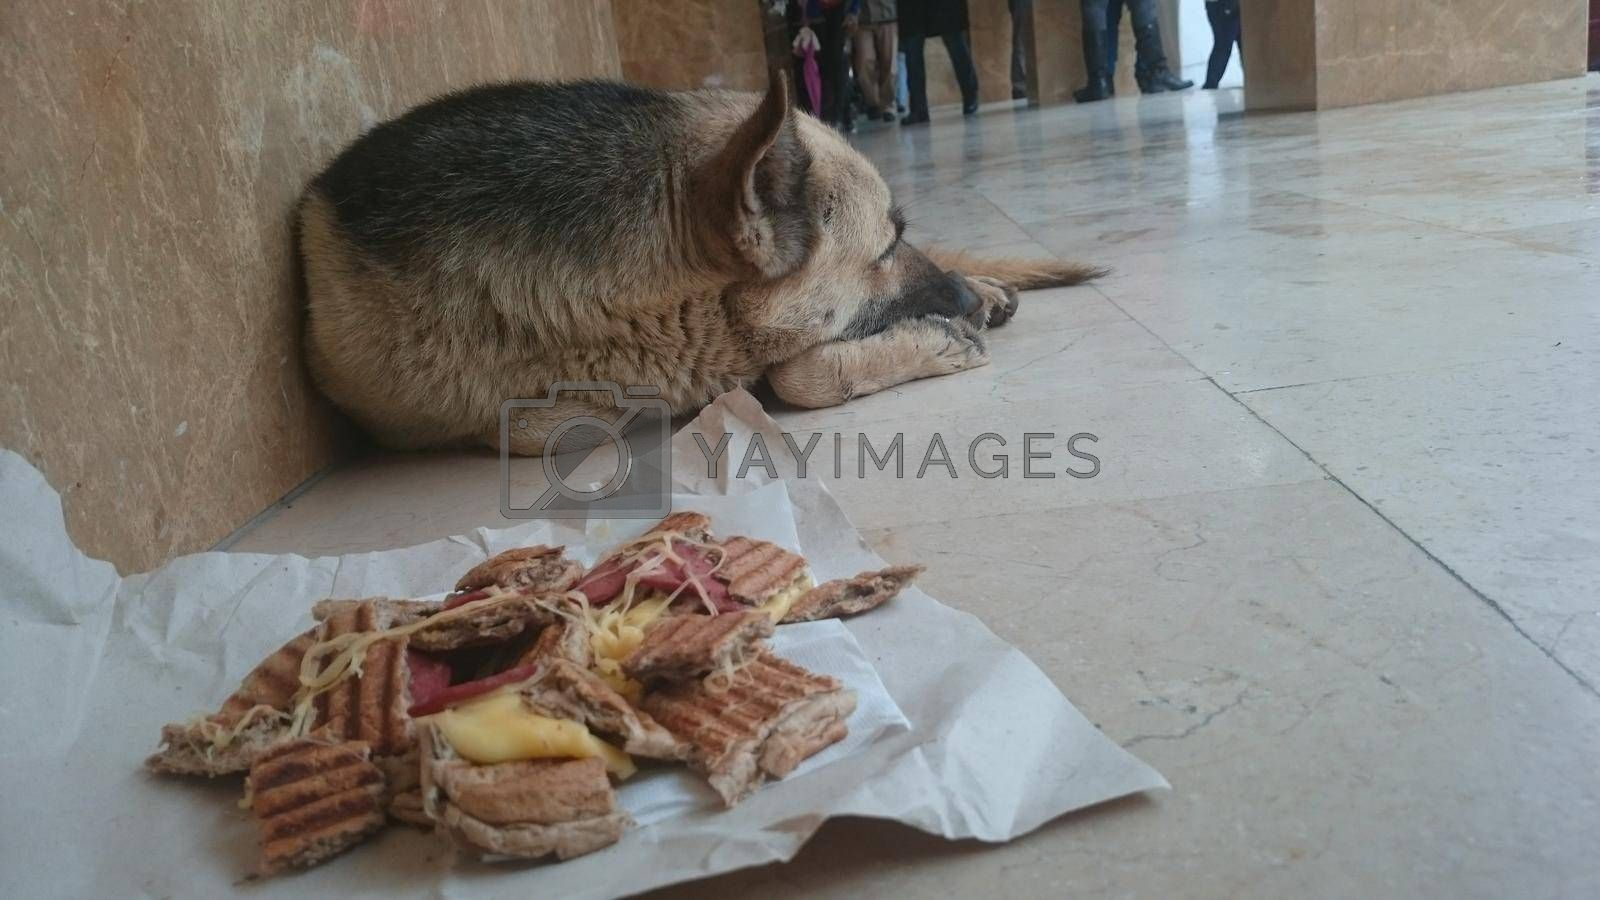 It depicts a dog sleeping on the ground